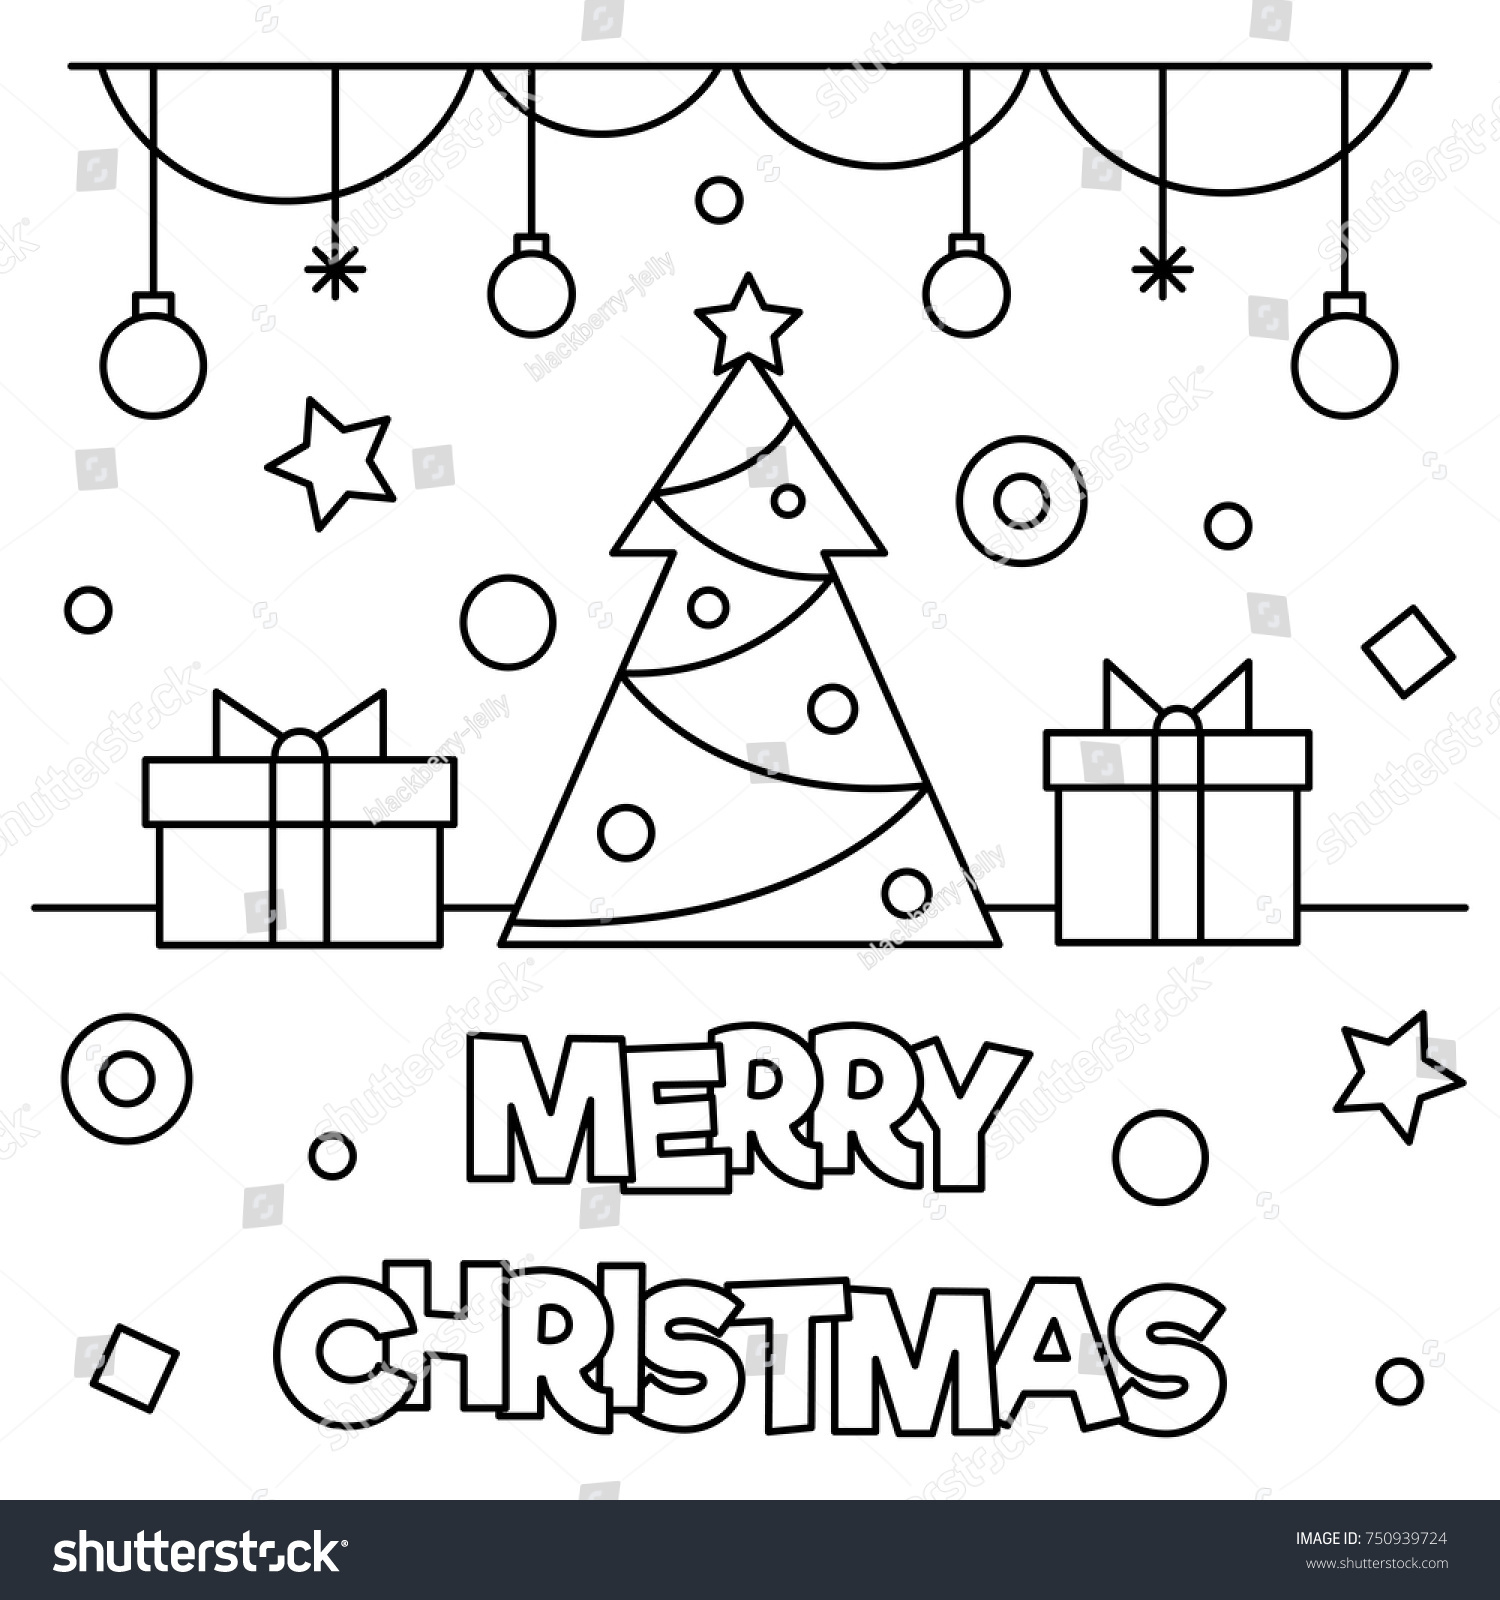 Merry Christmas Coloring Pages.Merry Christmas Coloring Page Black White Stock Vector